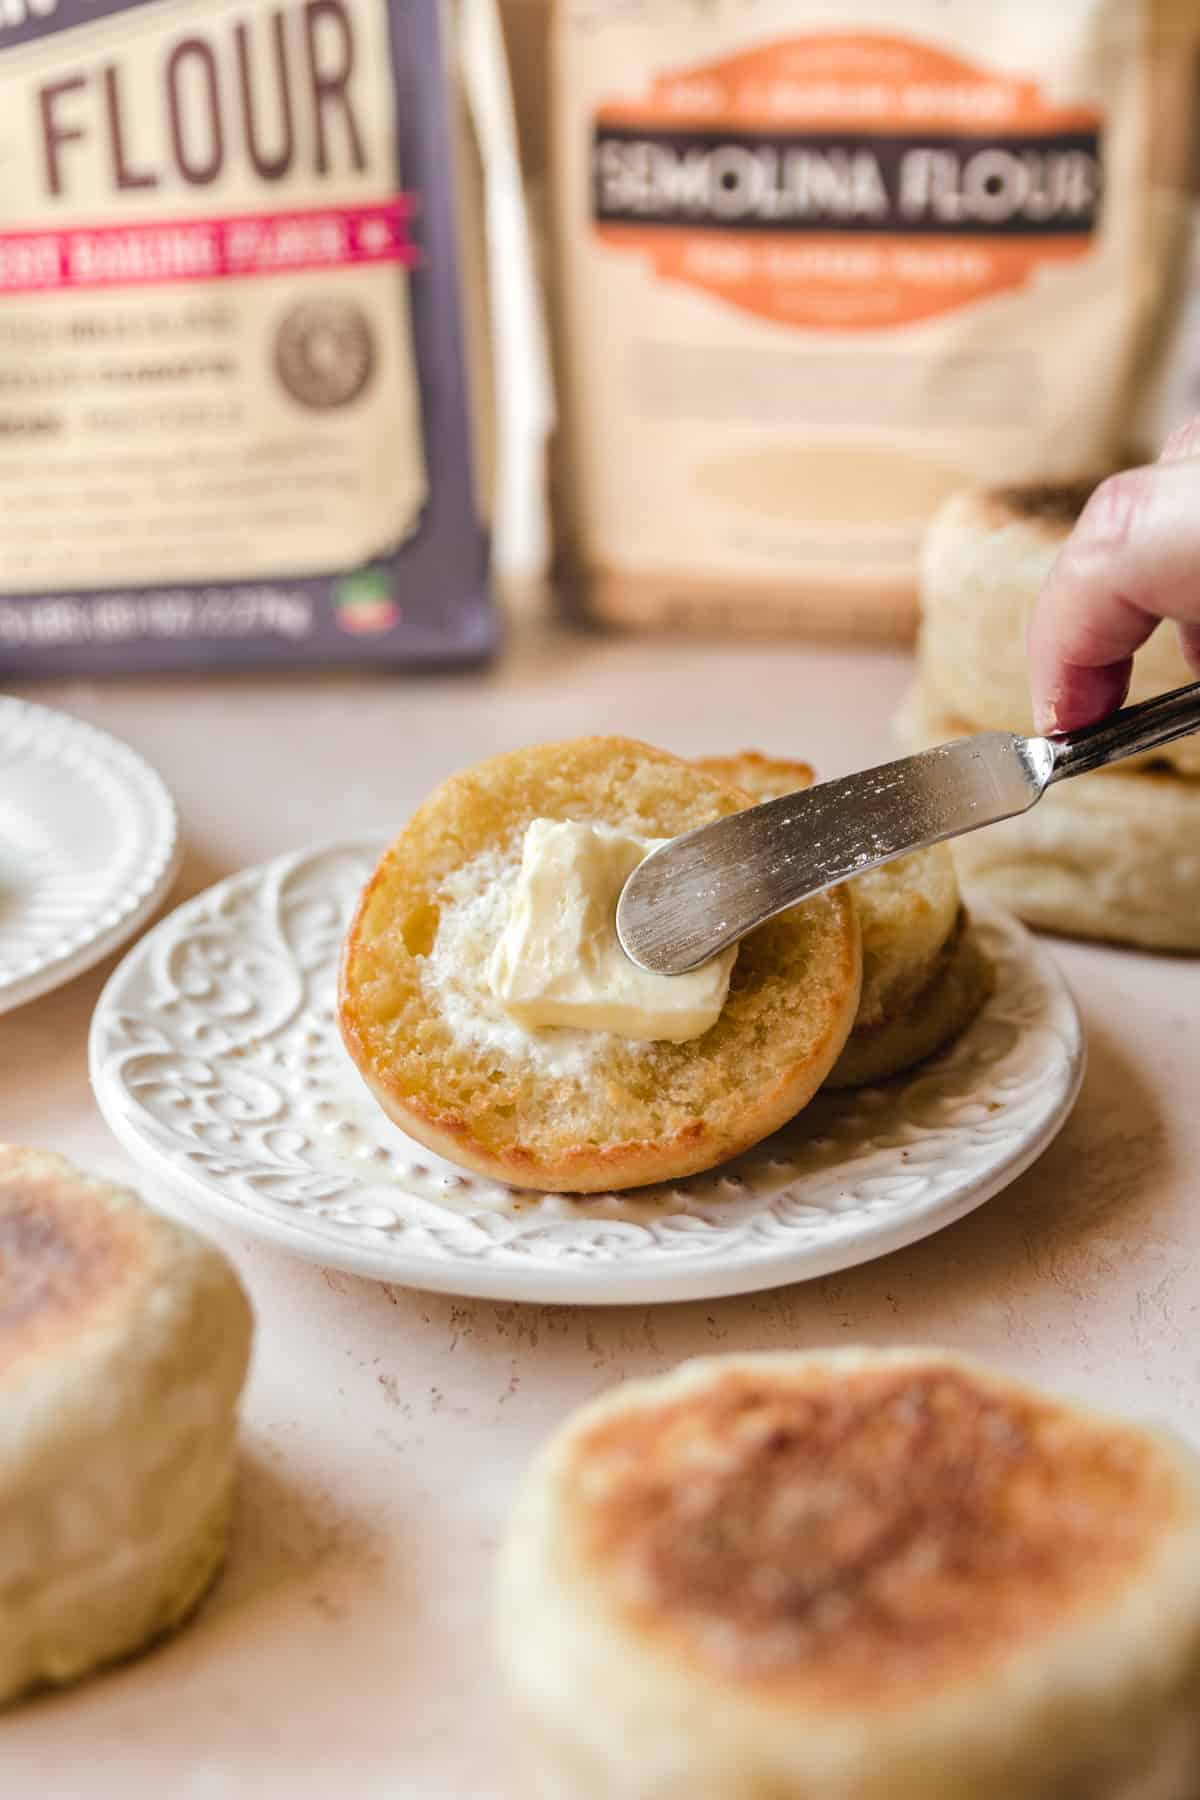 These English muffins are best enjoyed warm with a pat of butter or some jam.